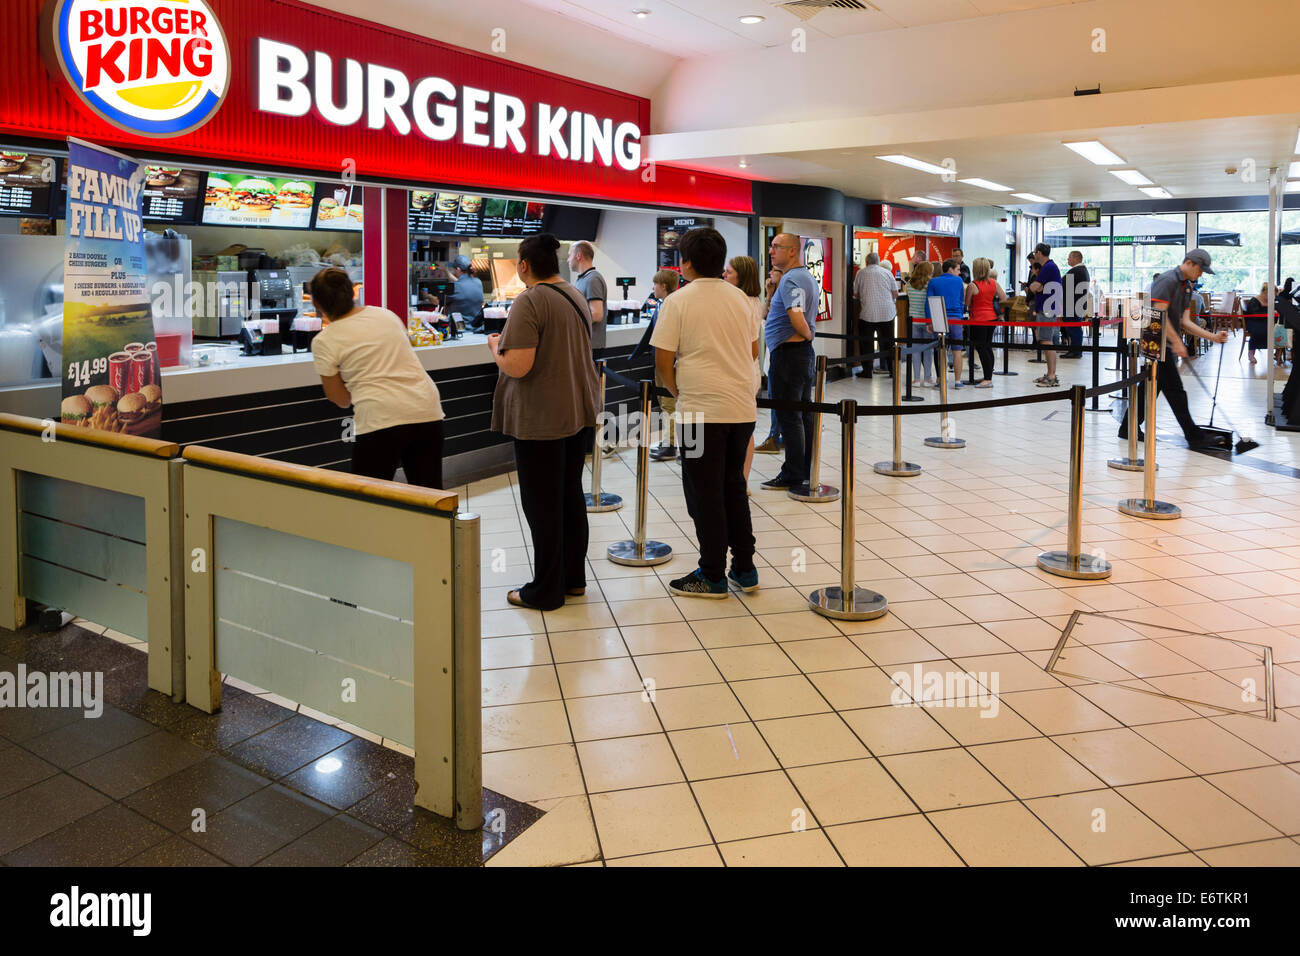 burger king customer services Burger king is a restaurant chain with its online and retail locations operational worldwide it is the second largest hamburger and fast food chain it has over.